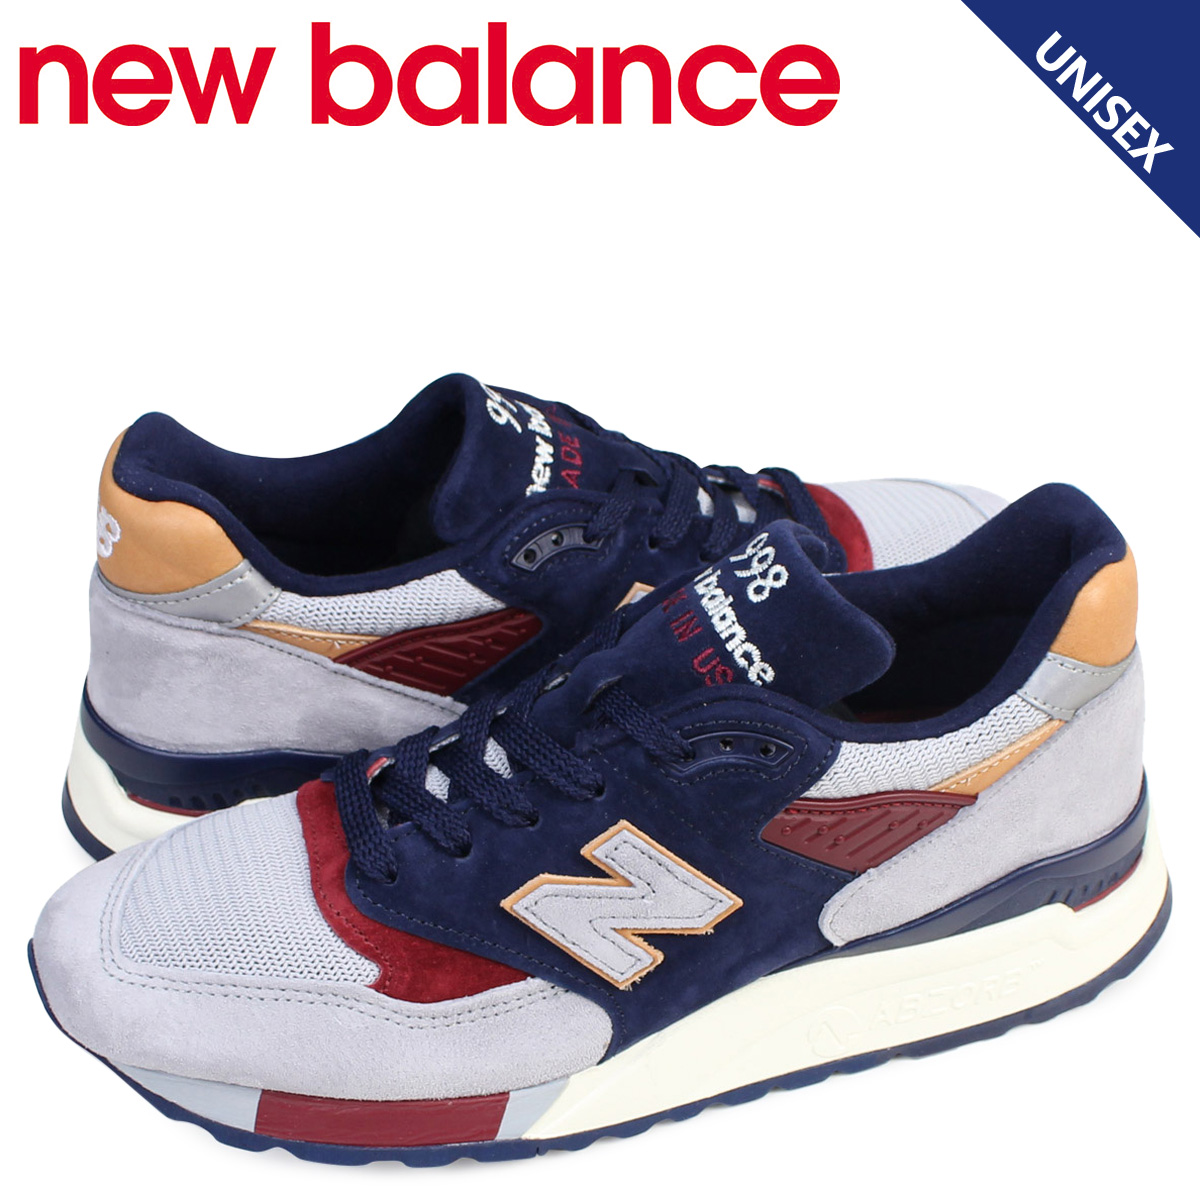 100% authentic 3e2a6 dc128 new balance 998 men's lady's New Balance sneakers M998CSU D Wise MADE IN  USA shoes navy